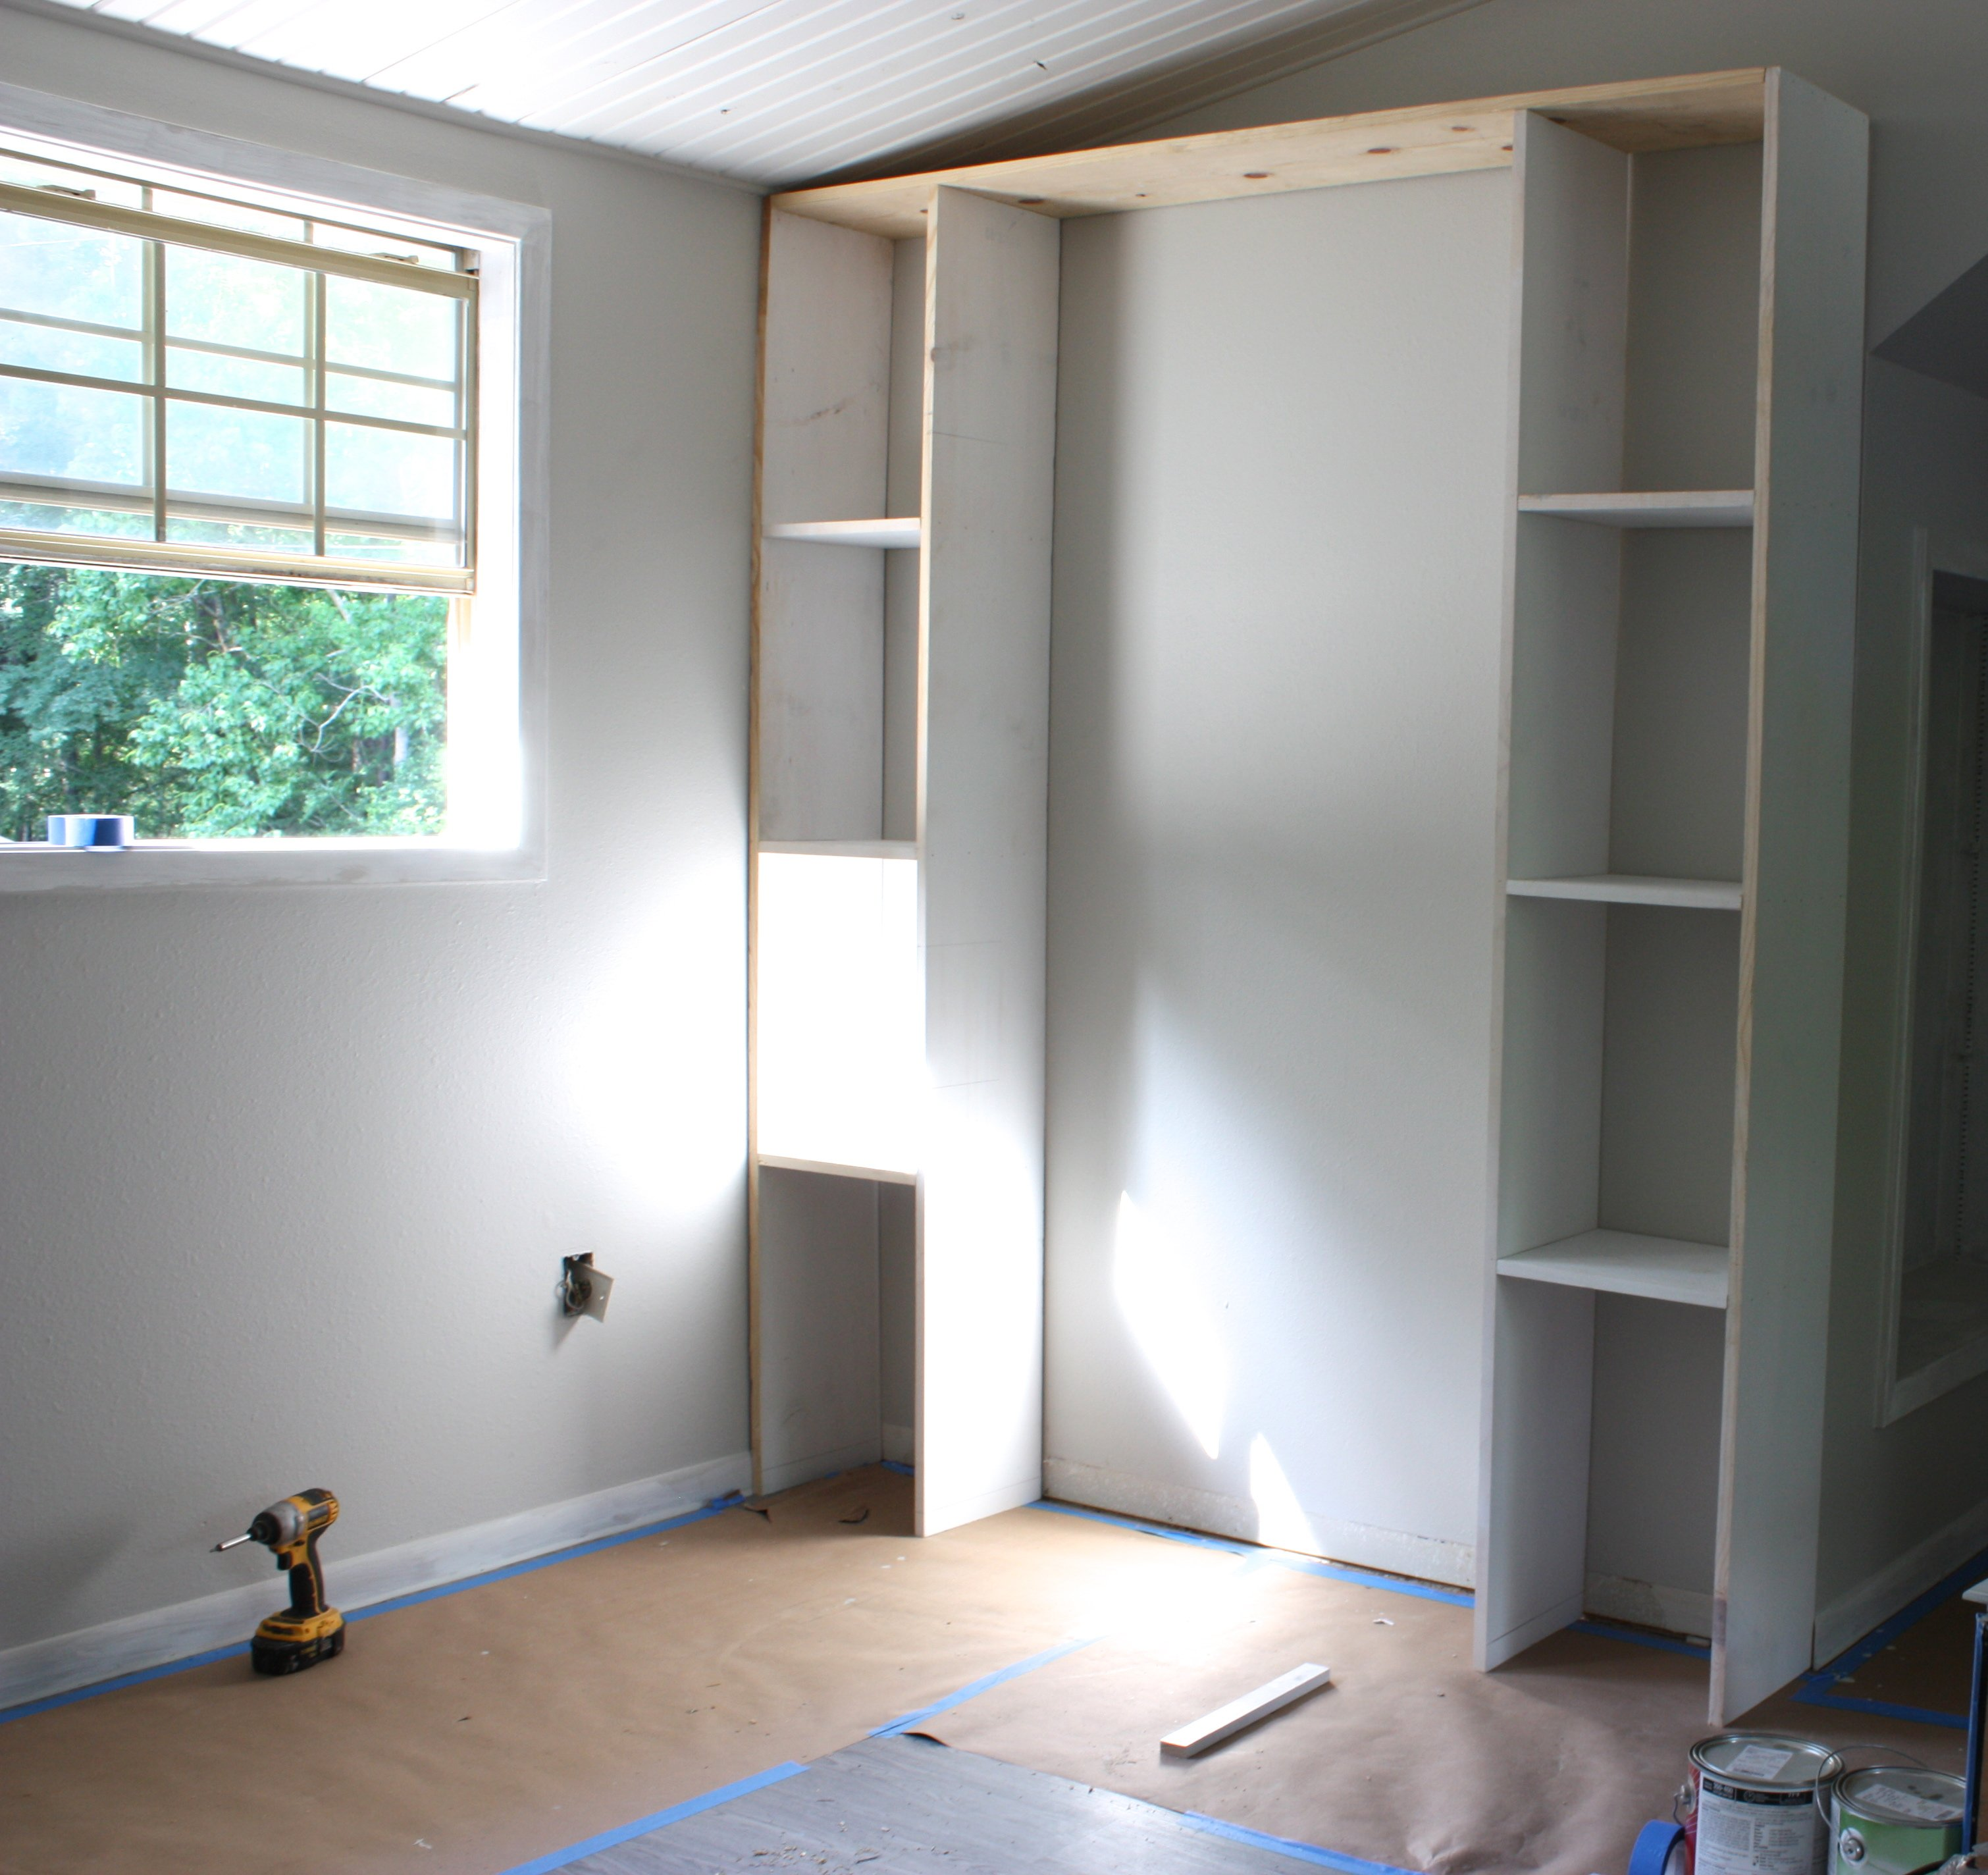 Built In Bookshelves: Create Built-In Shelving And Cabinets On A Tight Budget